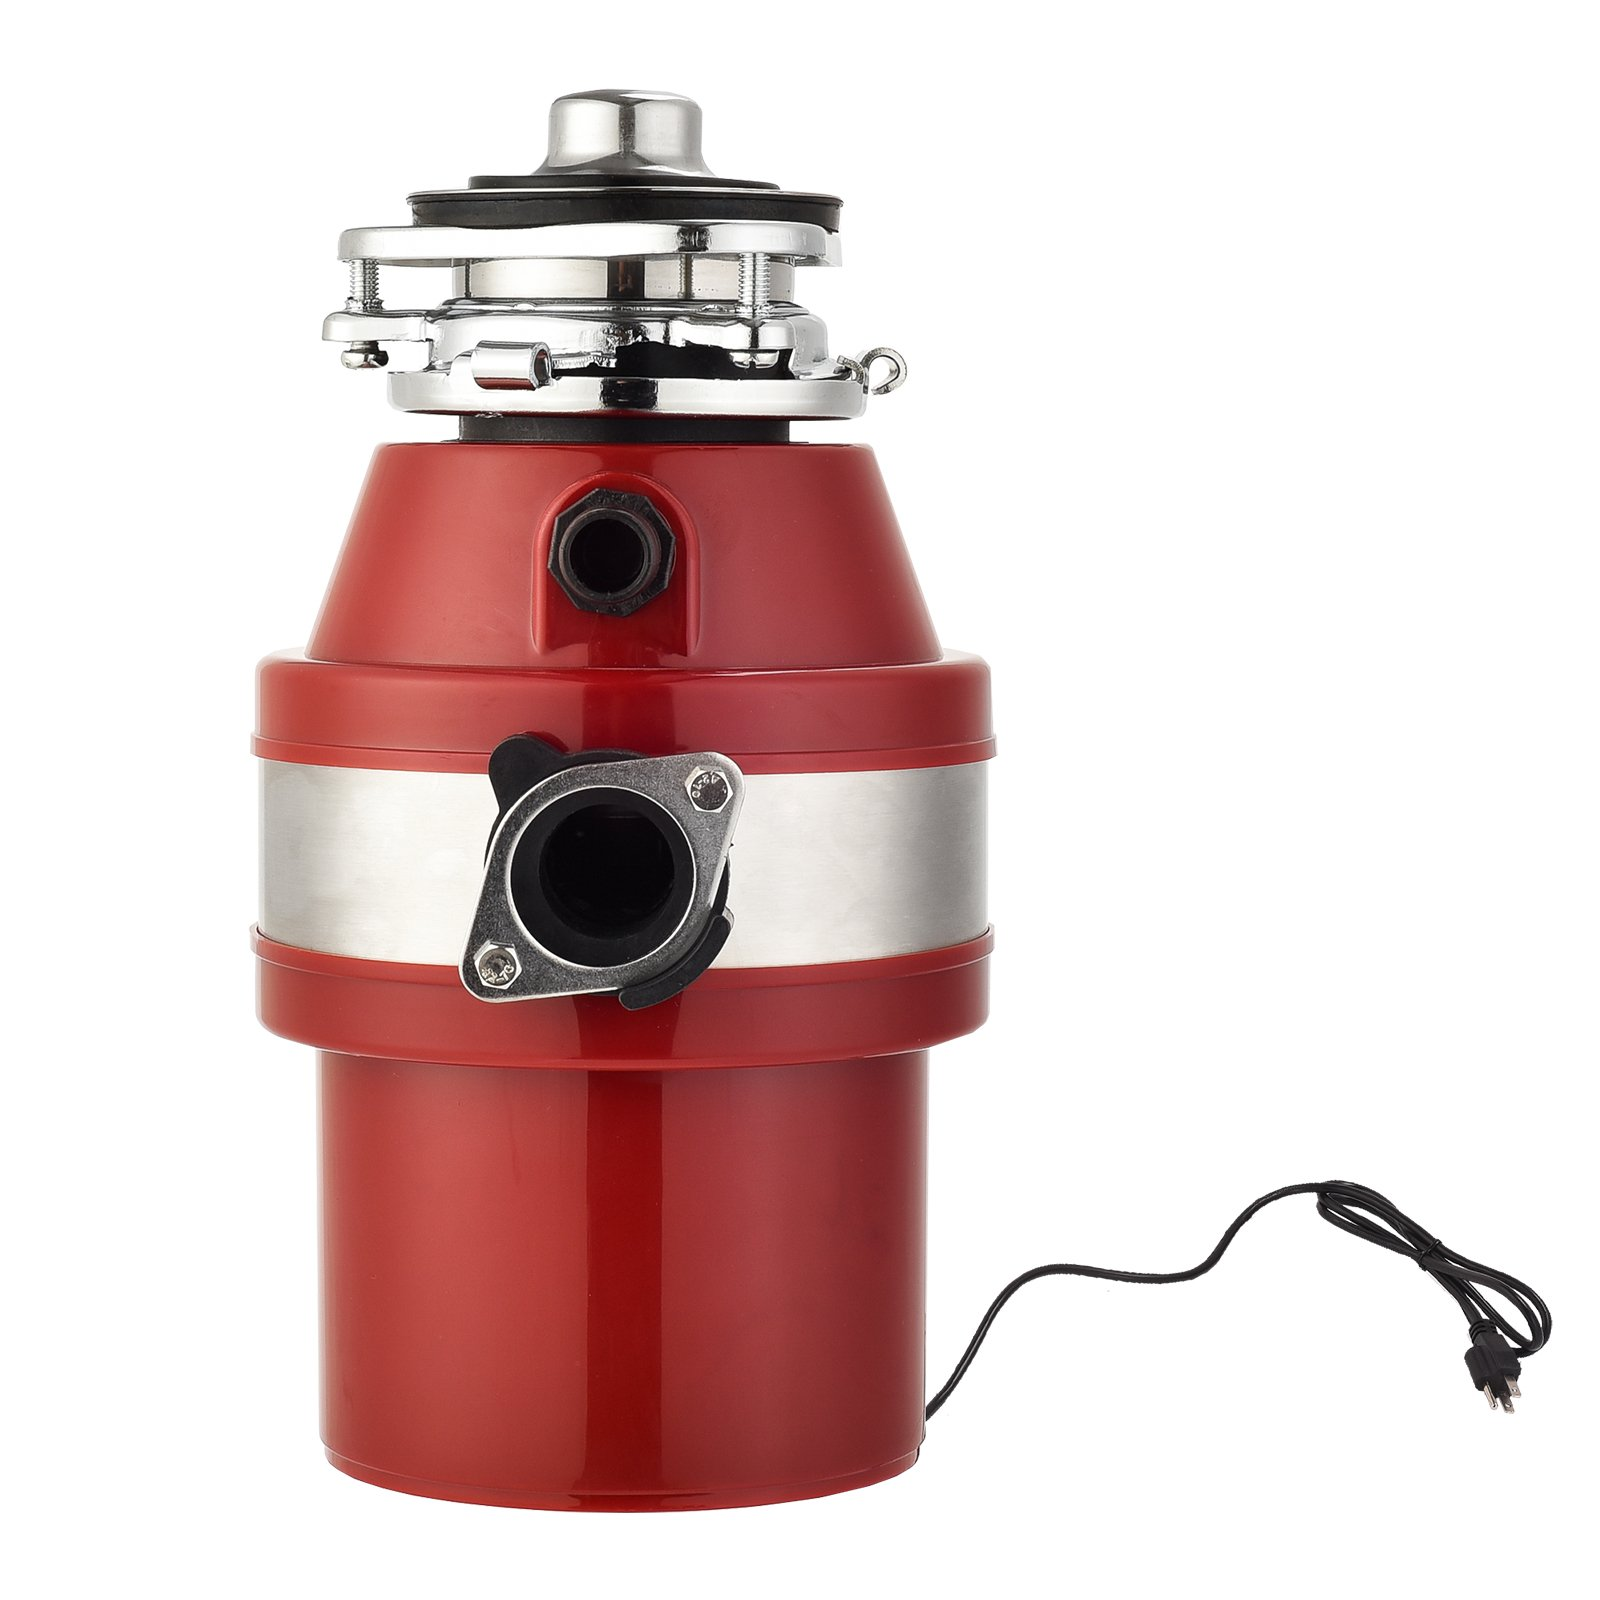 Garbage Disposals-KUPPET 2600 RPM 1.0 HP Household Continuous Food Feed Waste Garbage Disposal With Power Cord for Home Kitchen-Red by KUPPET (Image #1)